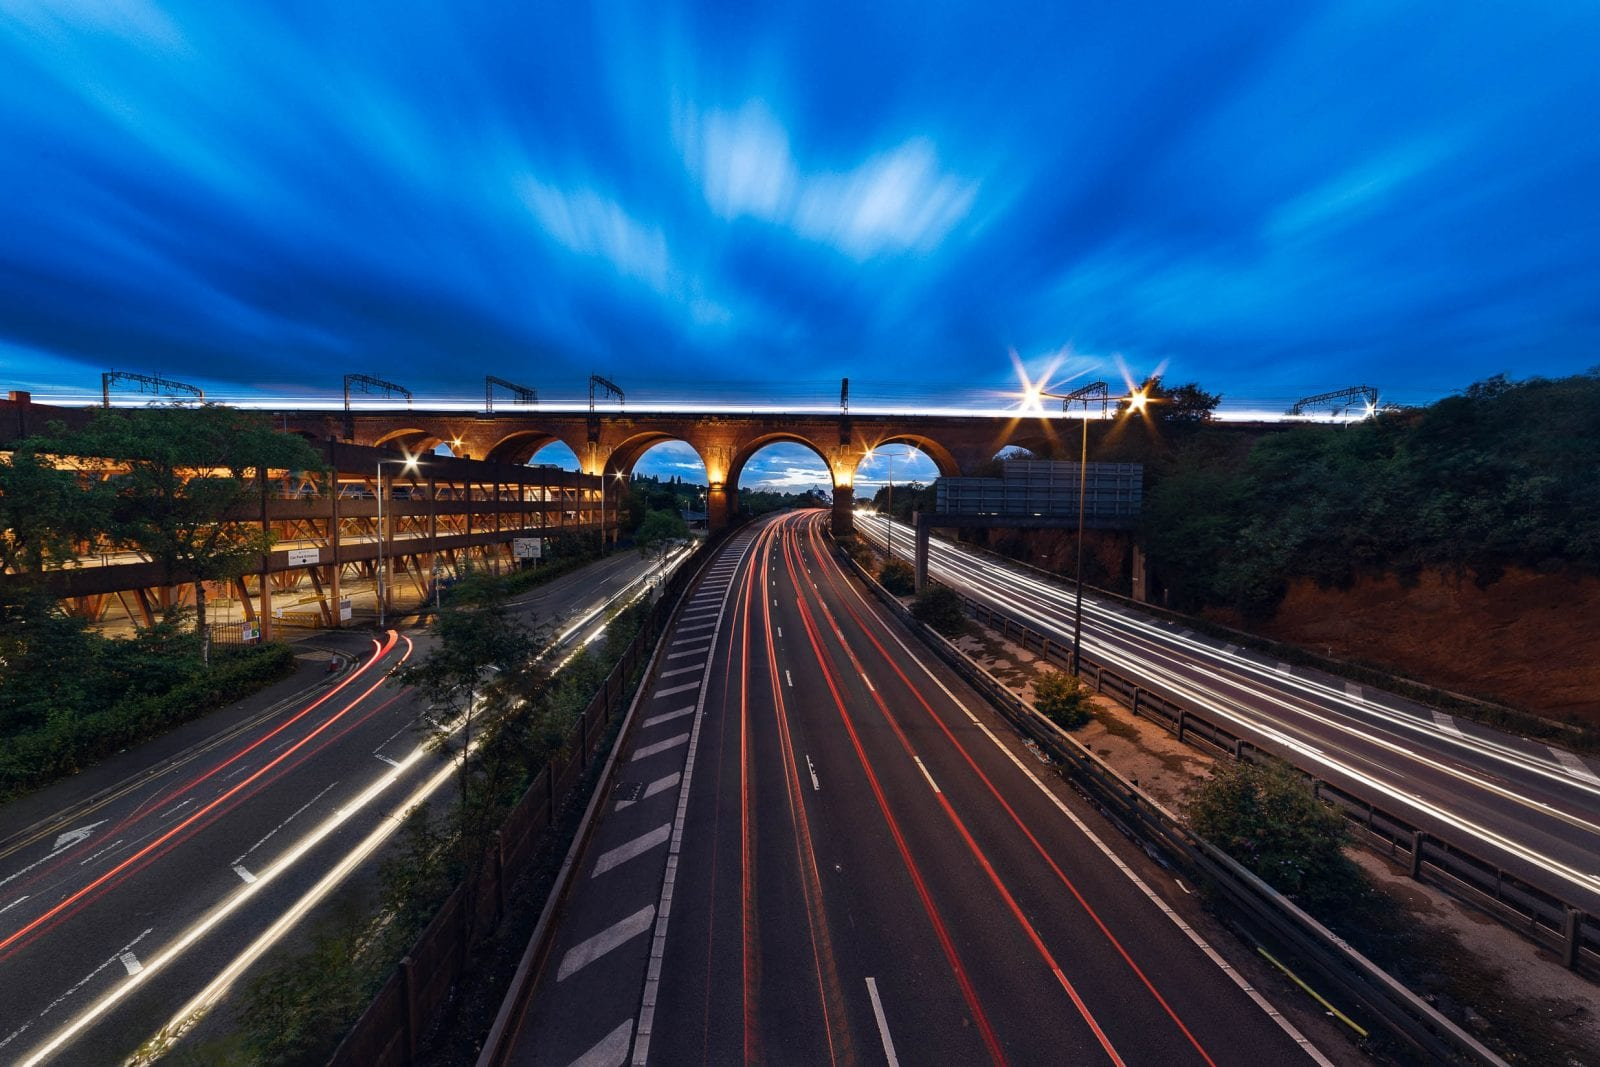 Where to go in Manchester to capture amazing twilight photos, The Manc